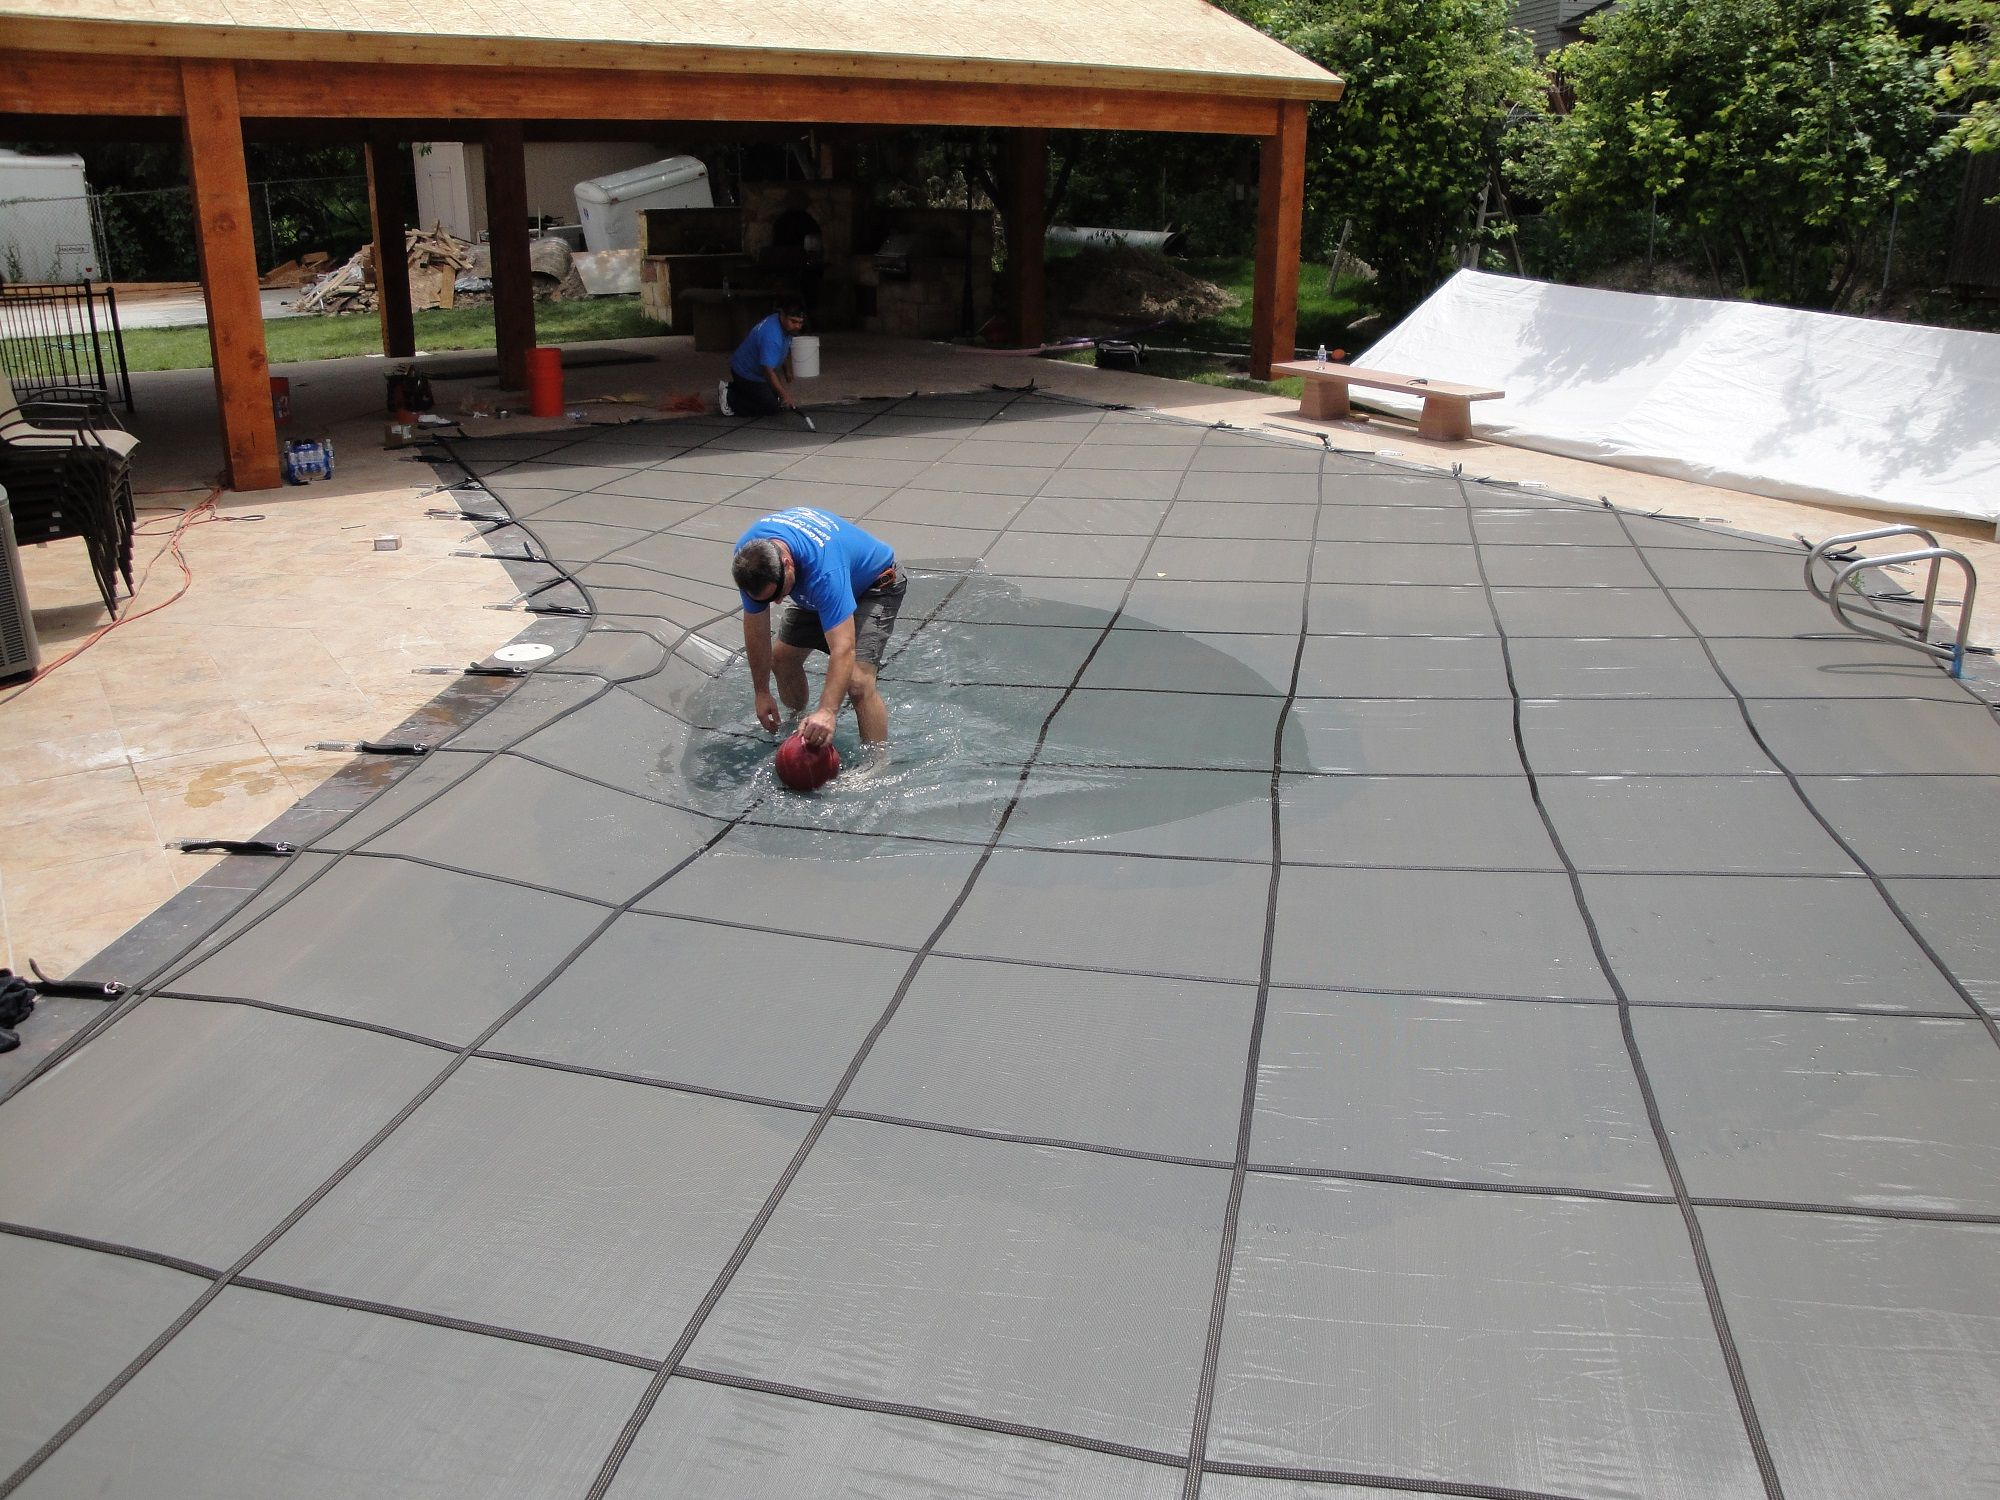 safety pool covers. Anchor Safety Pool Covers - First, It Prevents Most Dirt And Debris From Getting Into The Keeping Cleaner Fo